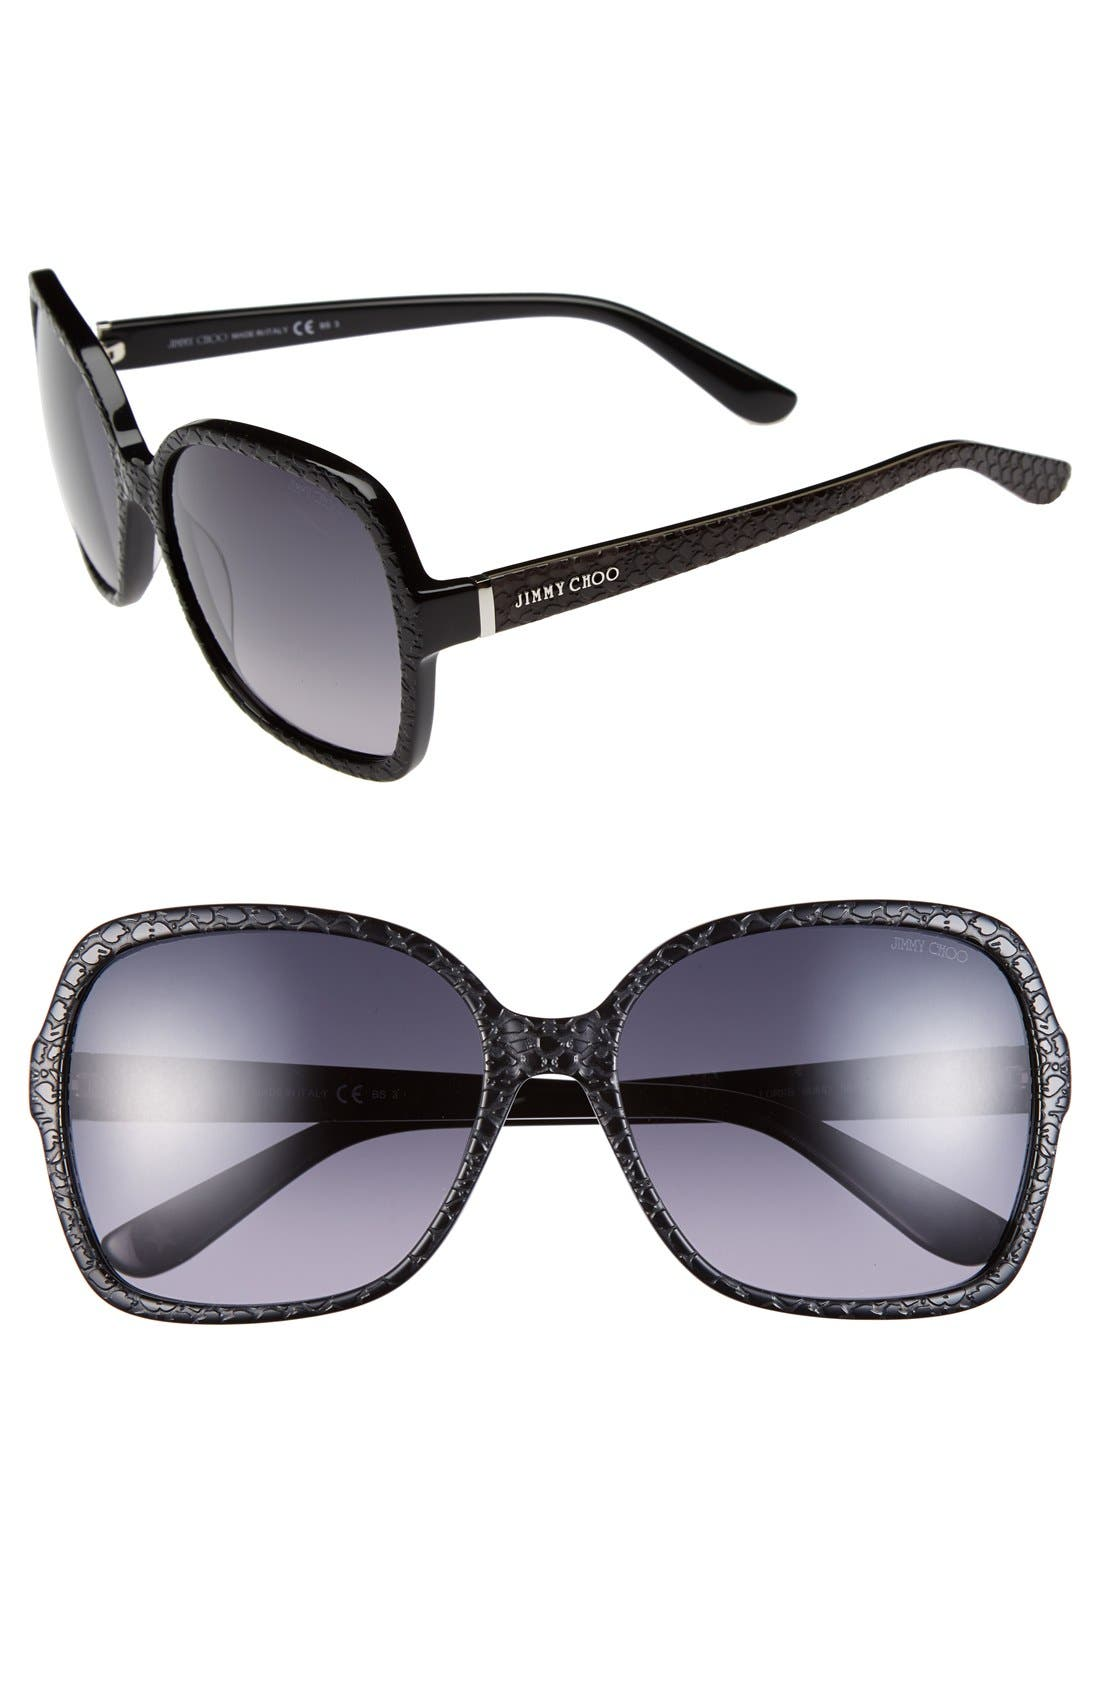 Alternate Image 1 Selected - Jimmy Choo 58mm Butterfly Sunglasses